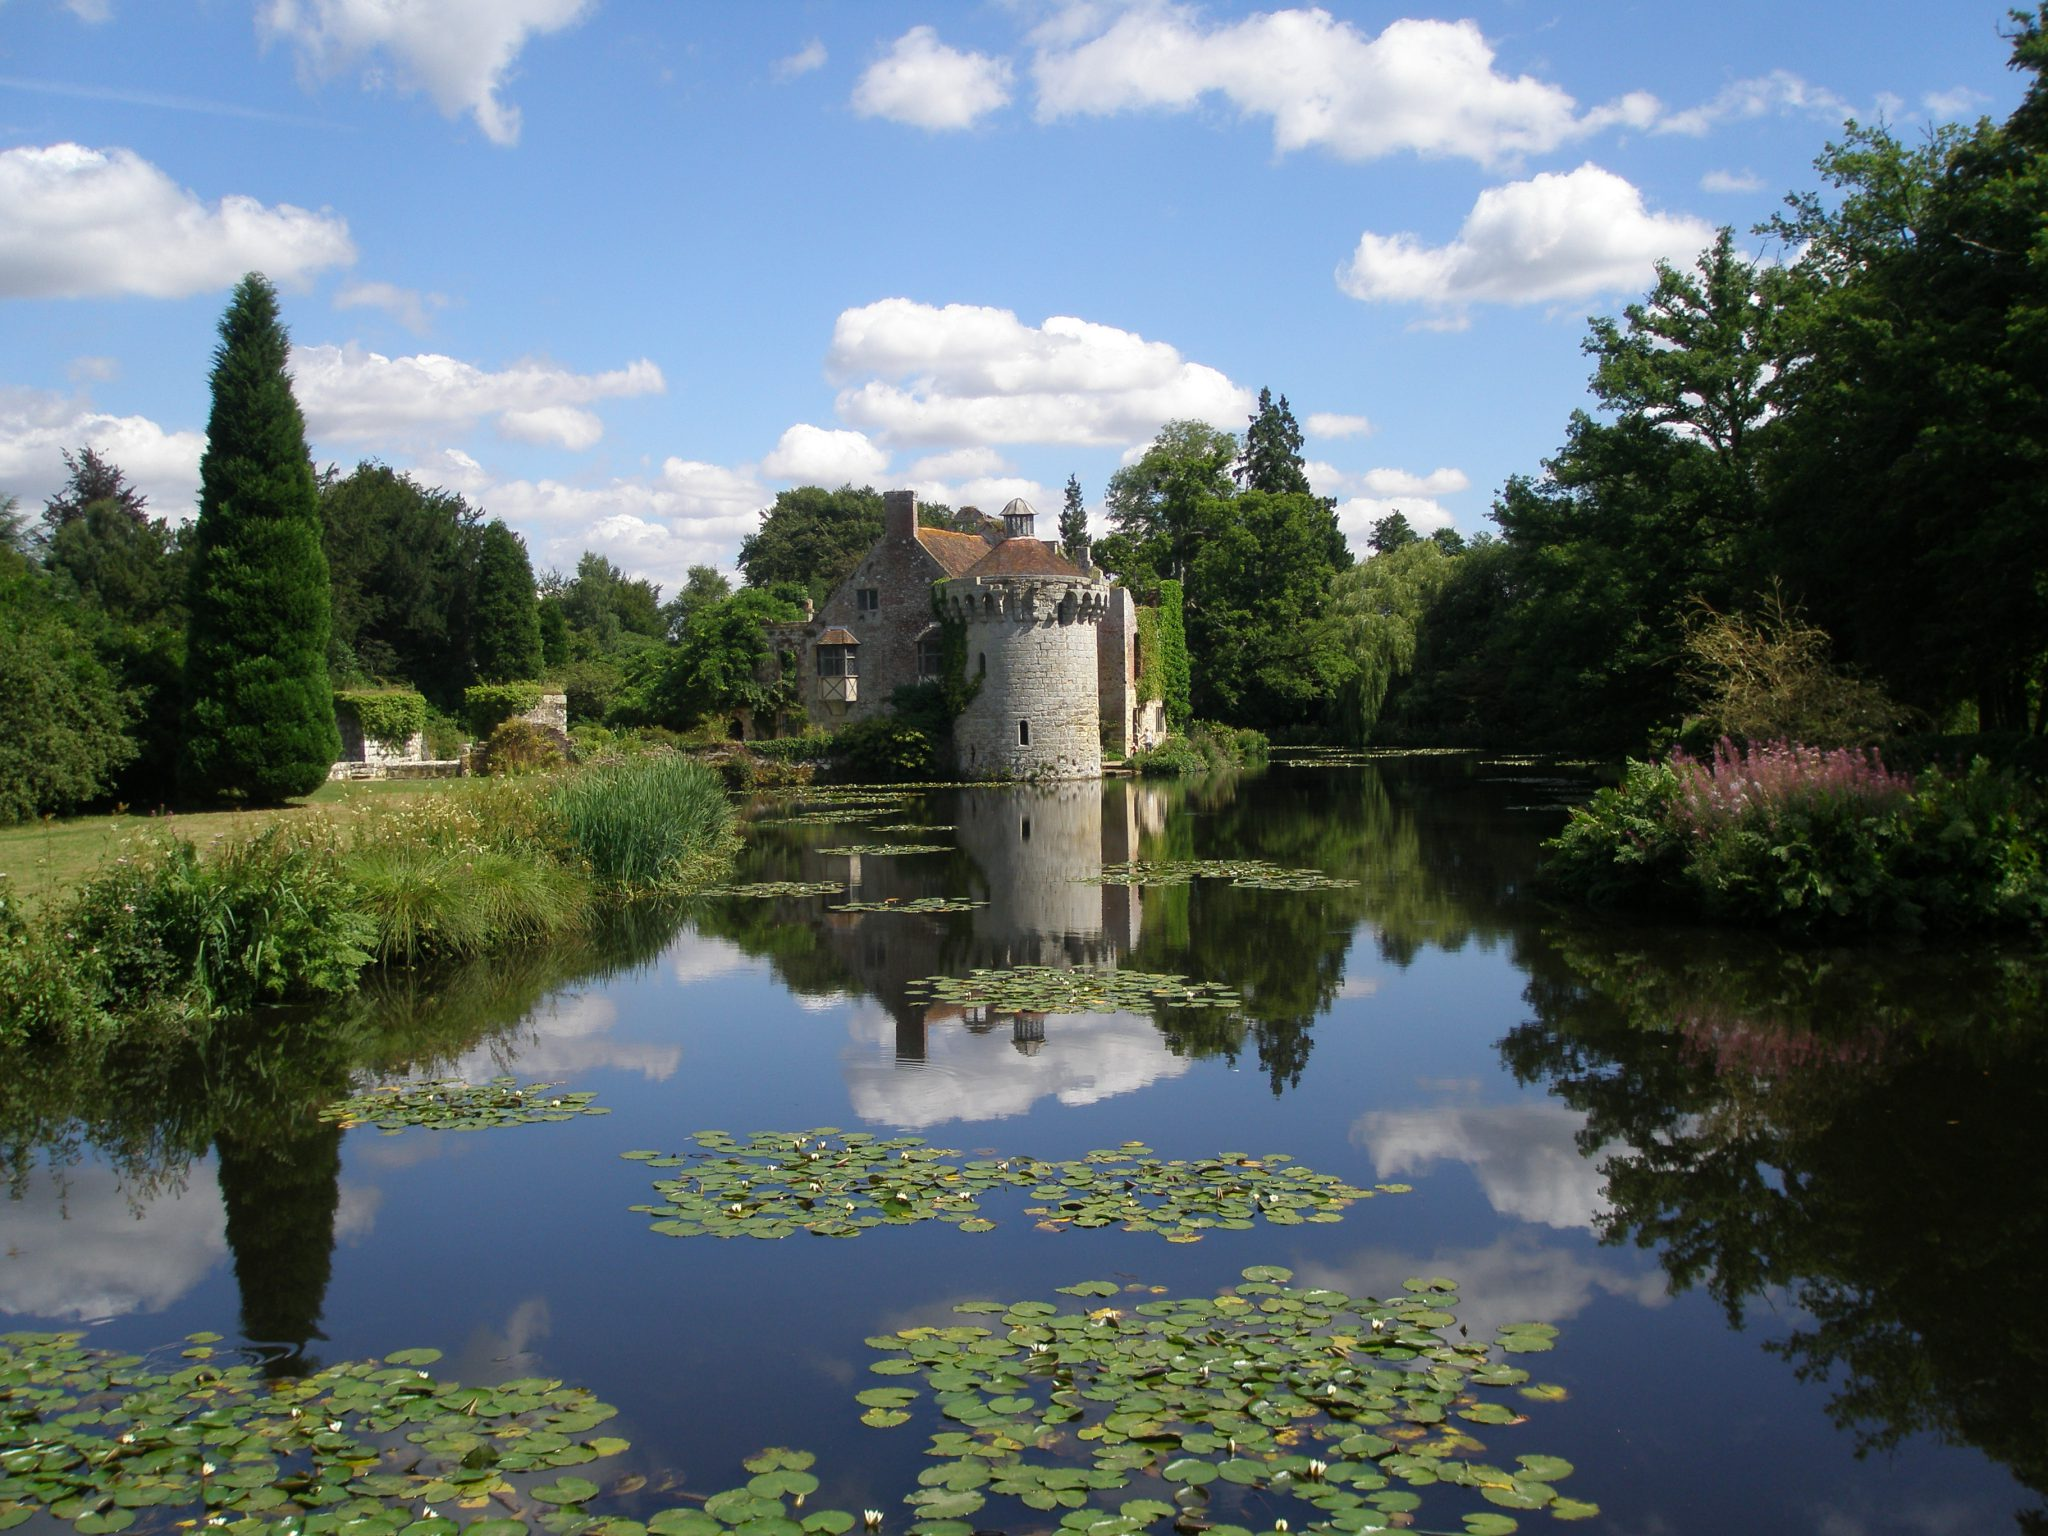 The circular, late 14th century tower at Scotney Castle, near Royal Tunbridge Wells, in Kent. This is a close to fairy-tale as life ever gets.